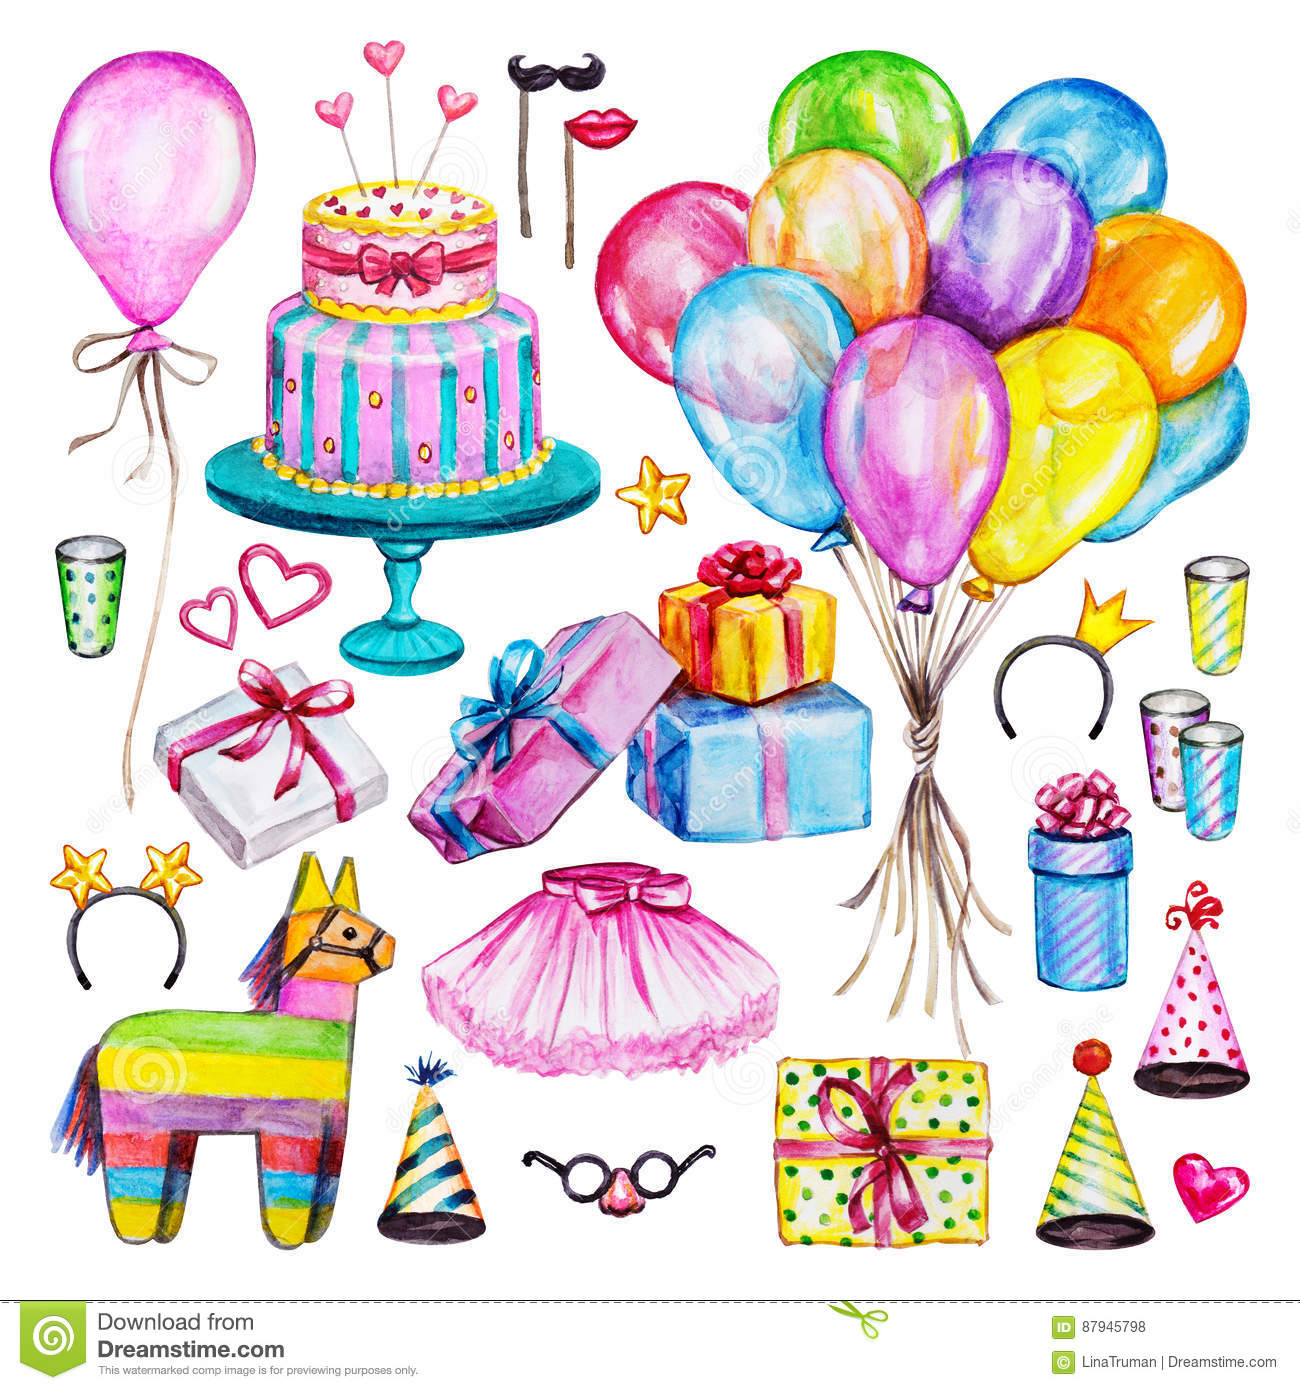 Sweets Birthday Clip Art Gifts Cupcakes Watercolor Birthday Party Balloons Bday Clipart Cake Watercolor Birthday Icons